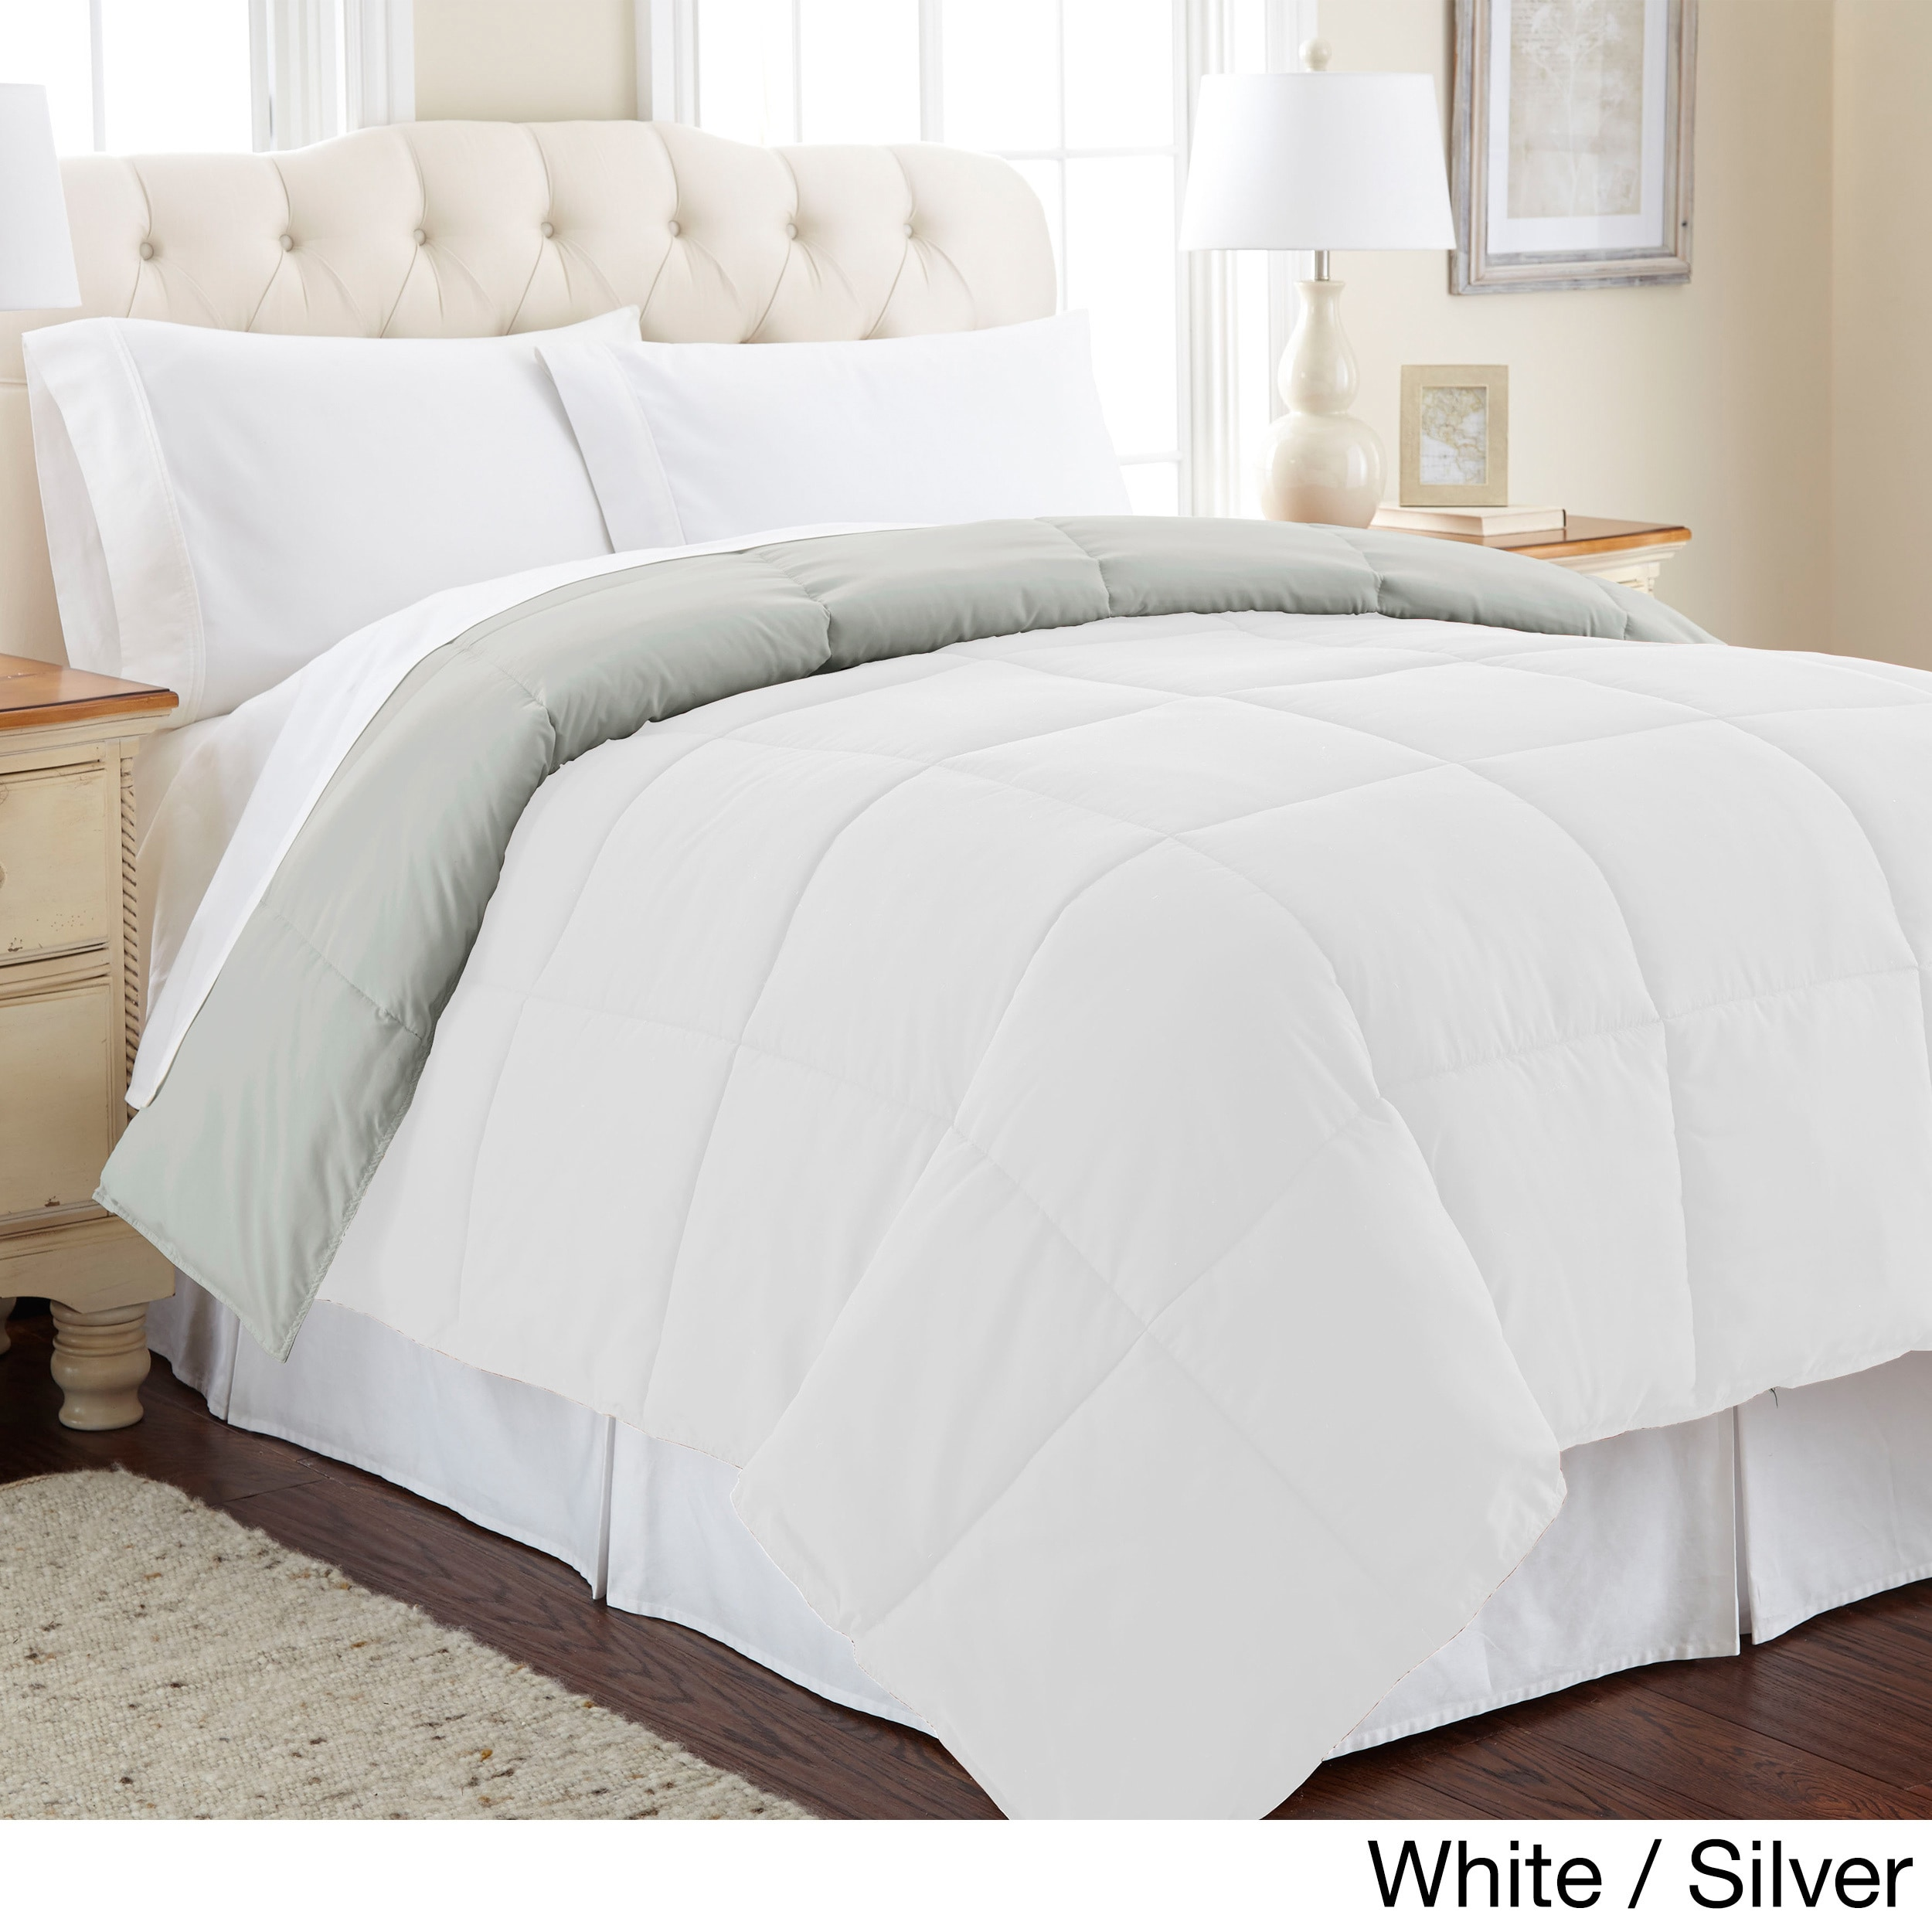 down over classics embossed product liquidations set comforter free reversible piece on home vcny artemis as is item overstock alternative shipping orders